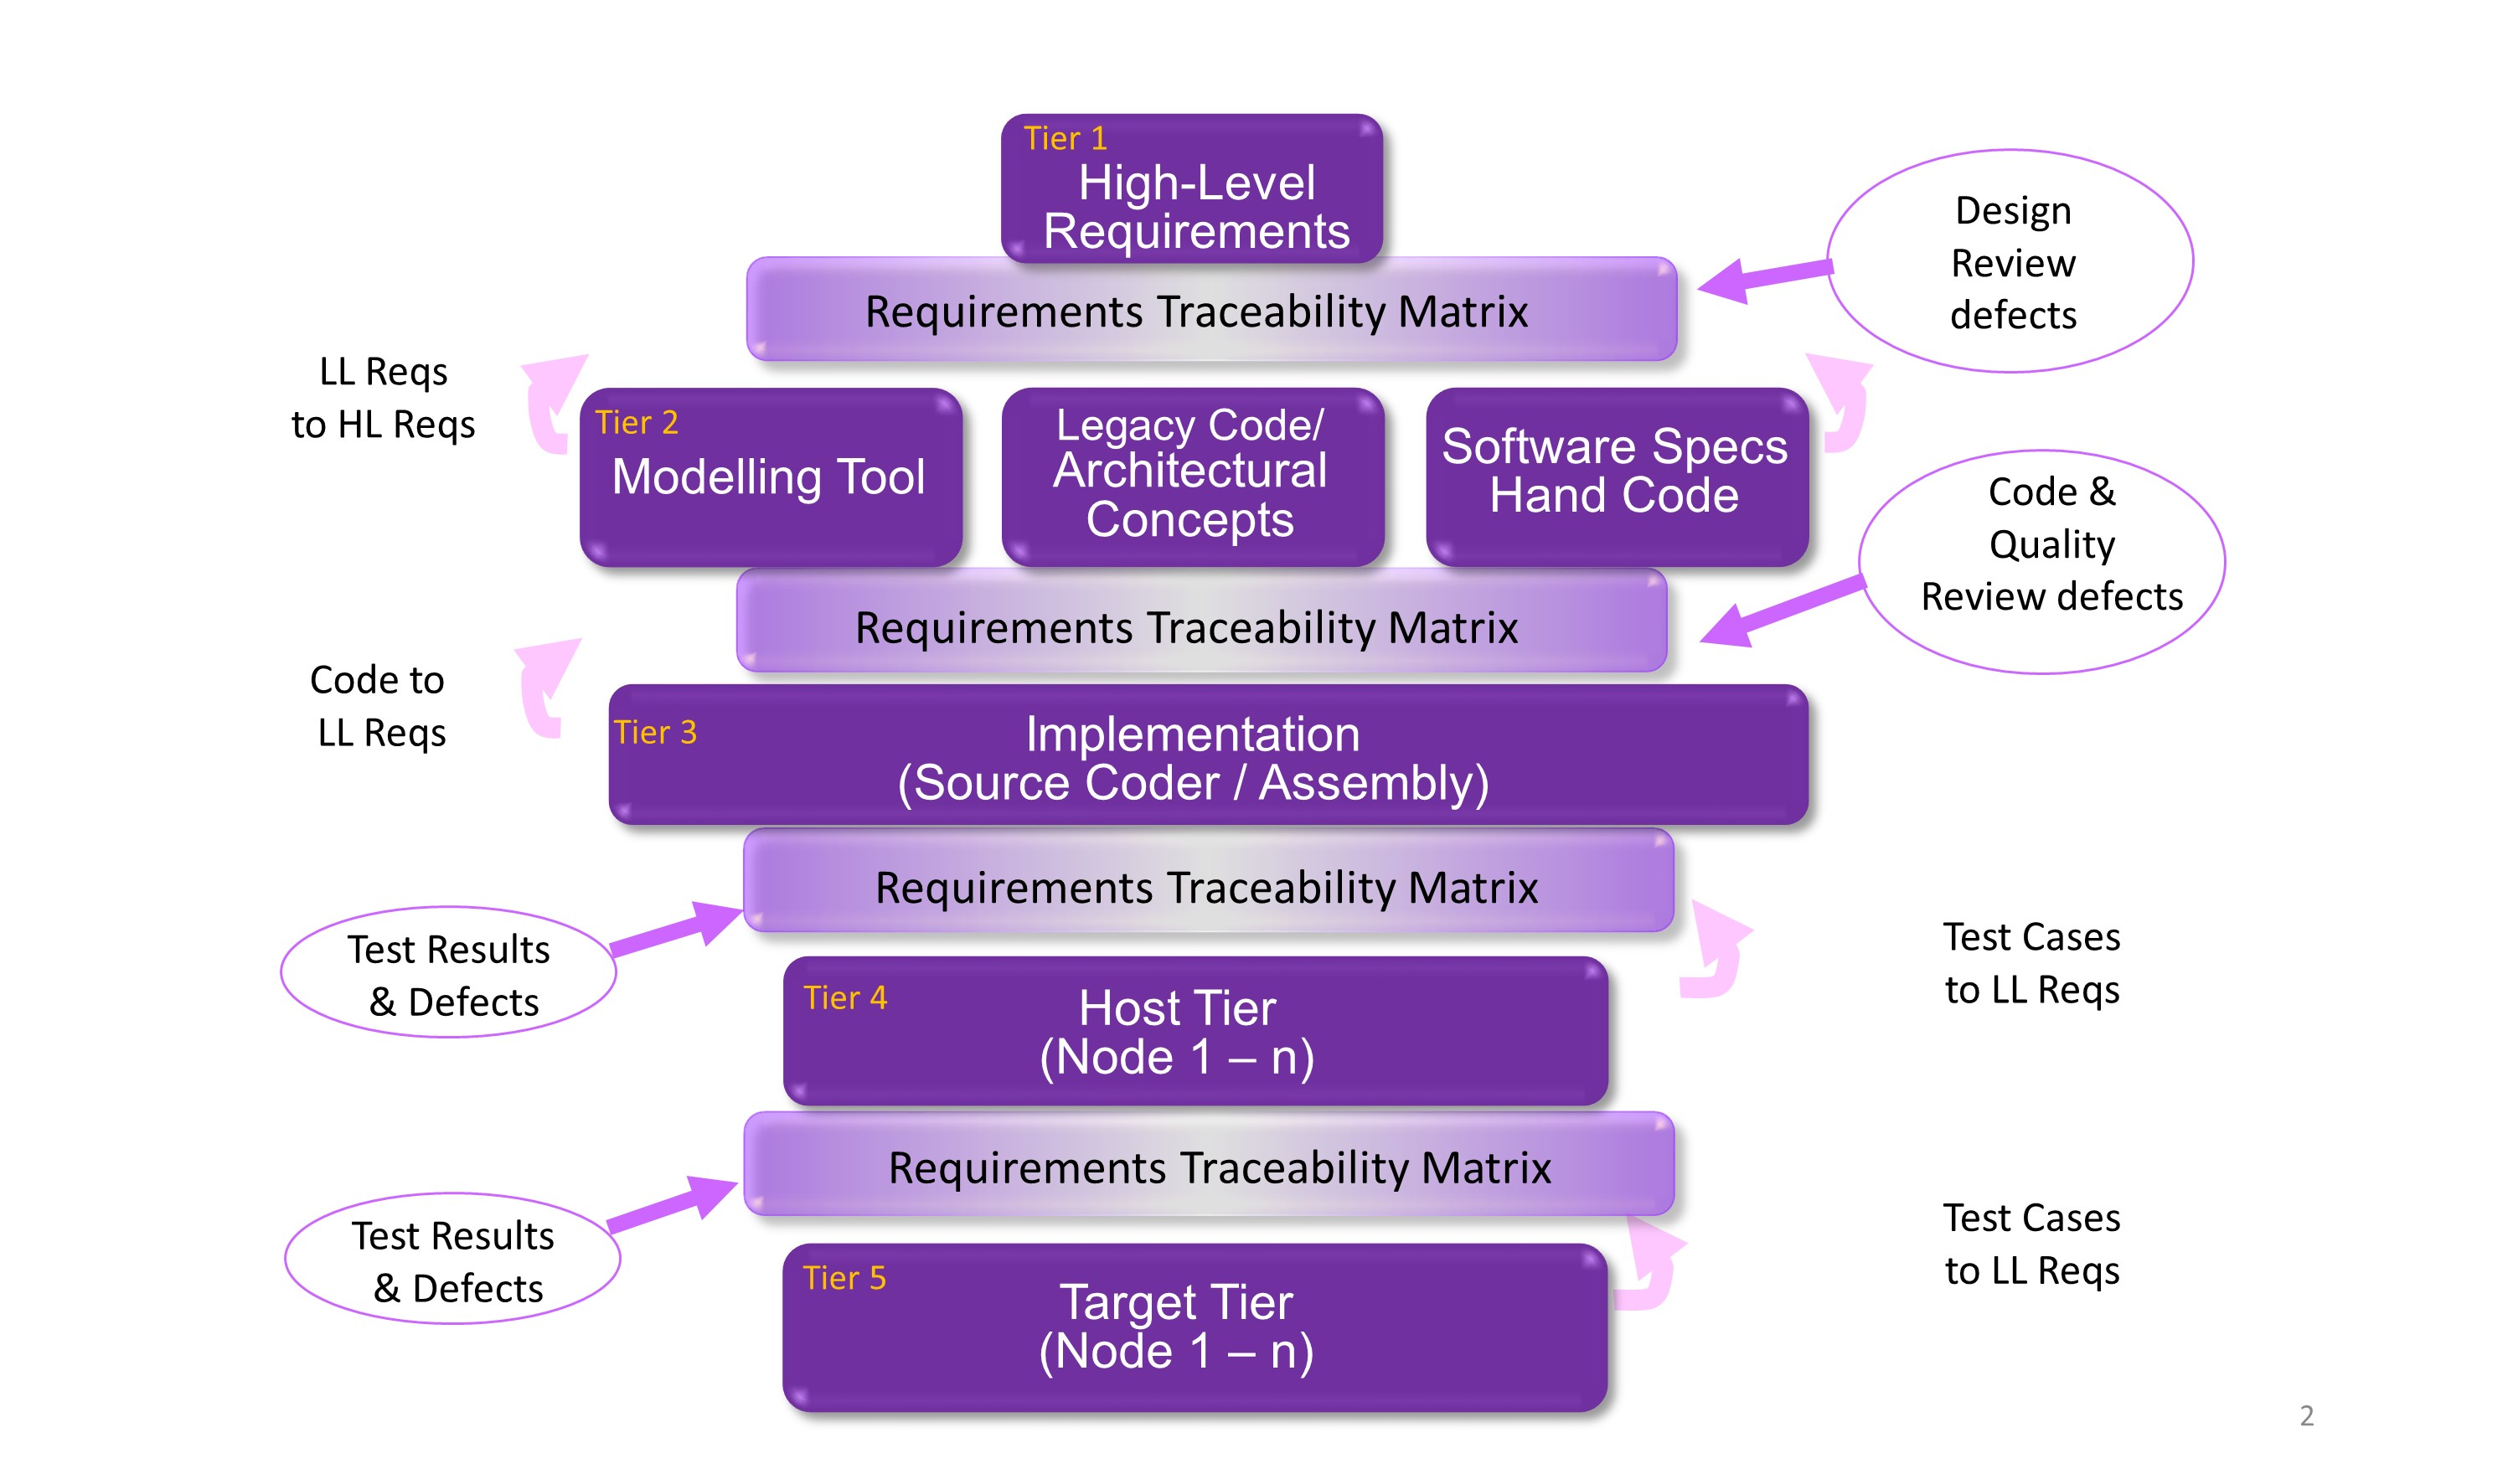 The requirements traceability matrix (RTM) plays a central